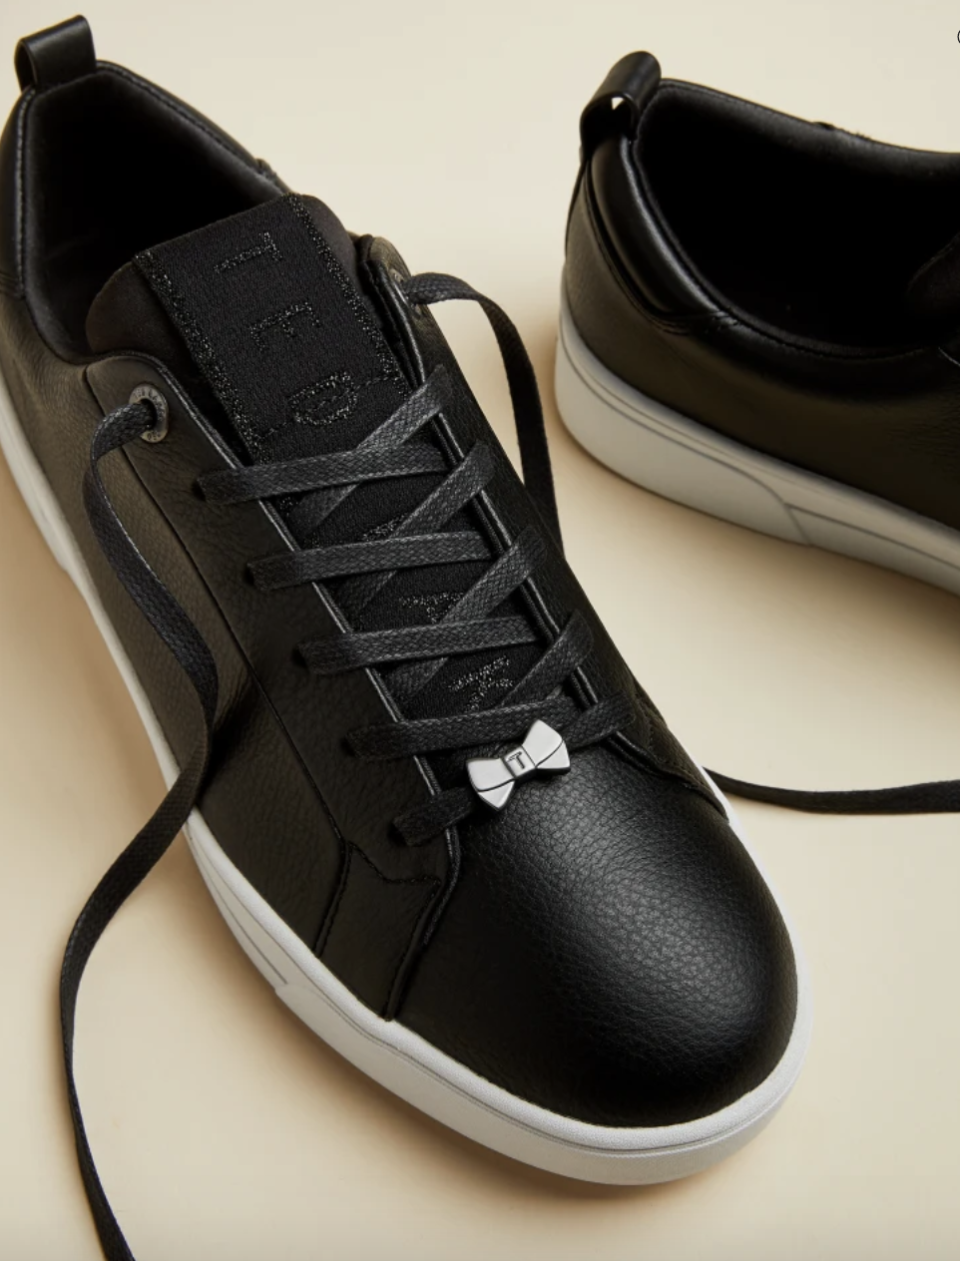 Branded leather trainers, £71 (was £119). PHOTO: Ted Baker